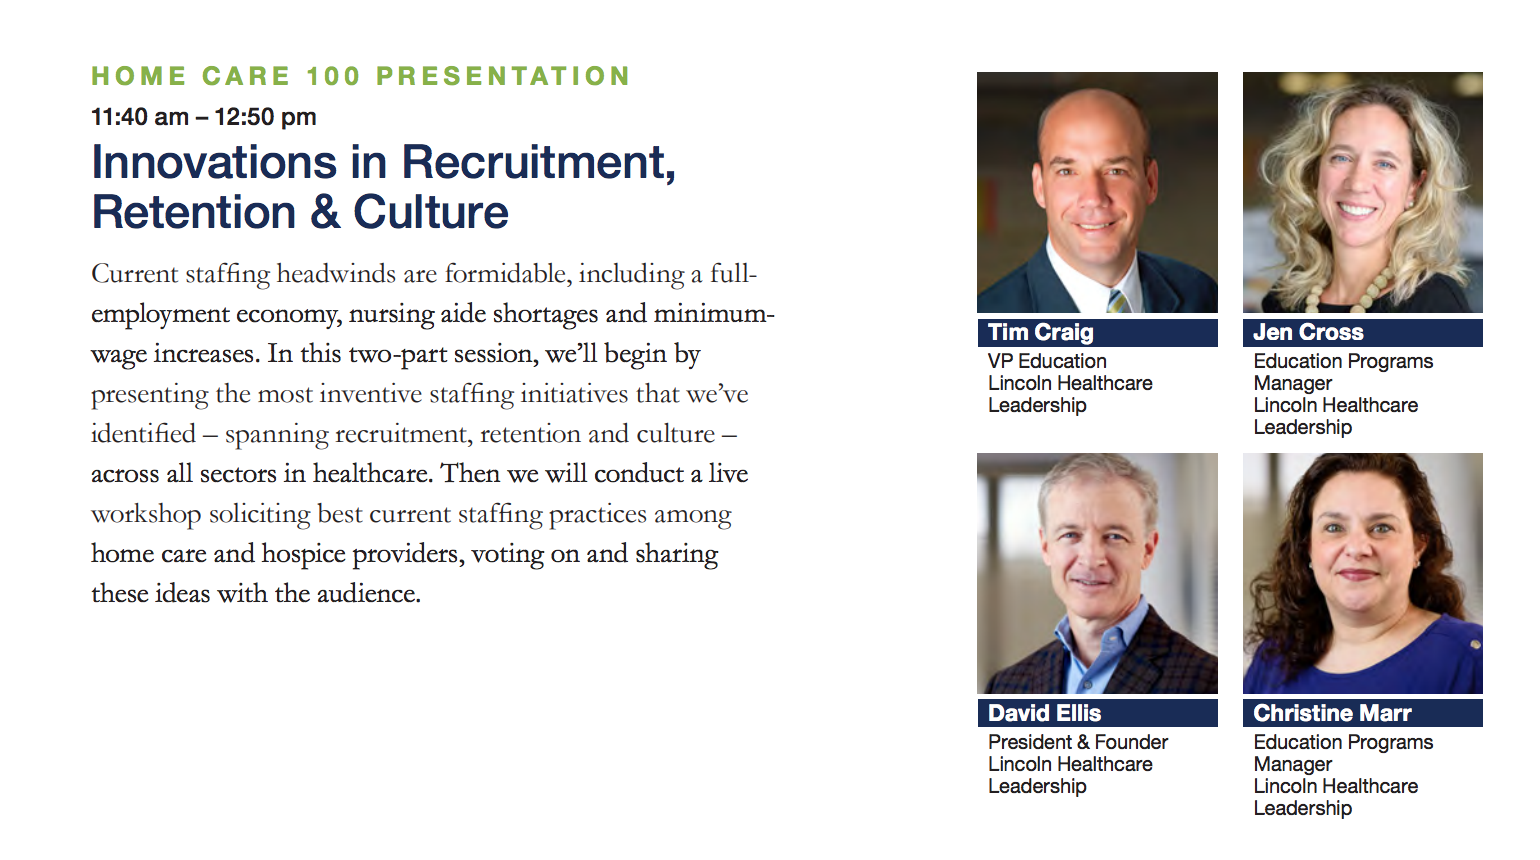 Home Care 100 presentation: Innovations in recruitment, retention and culture